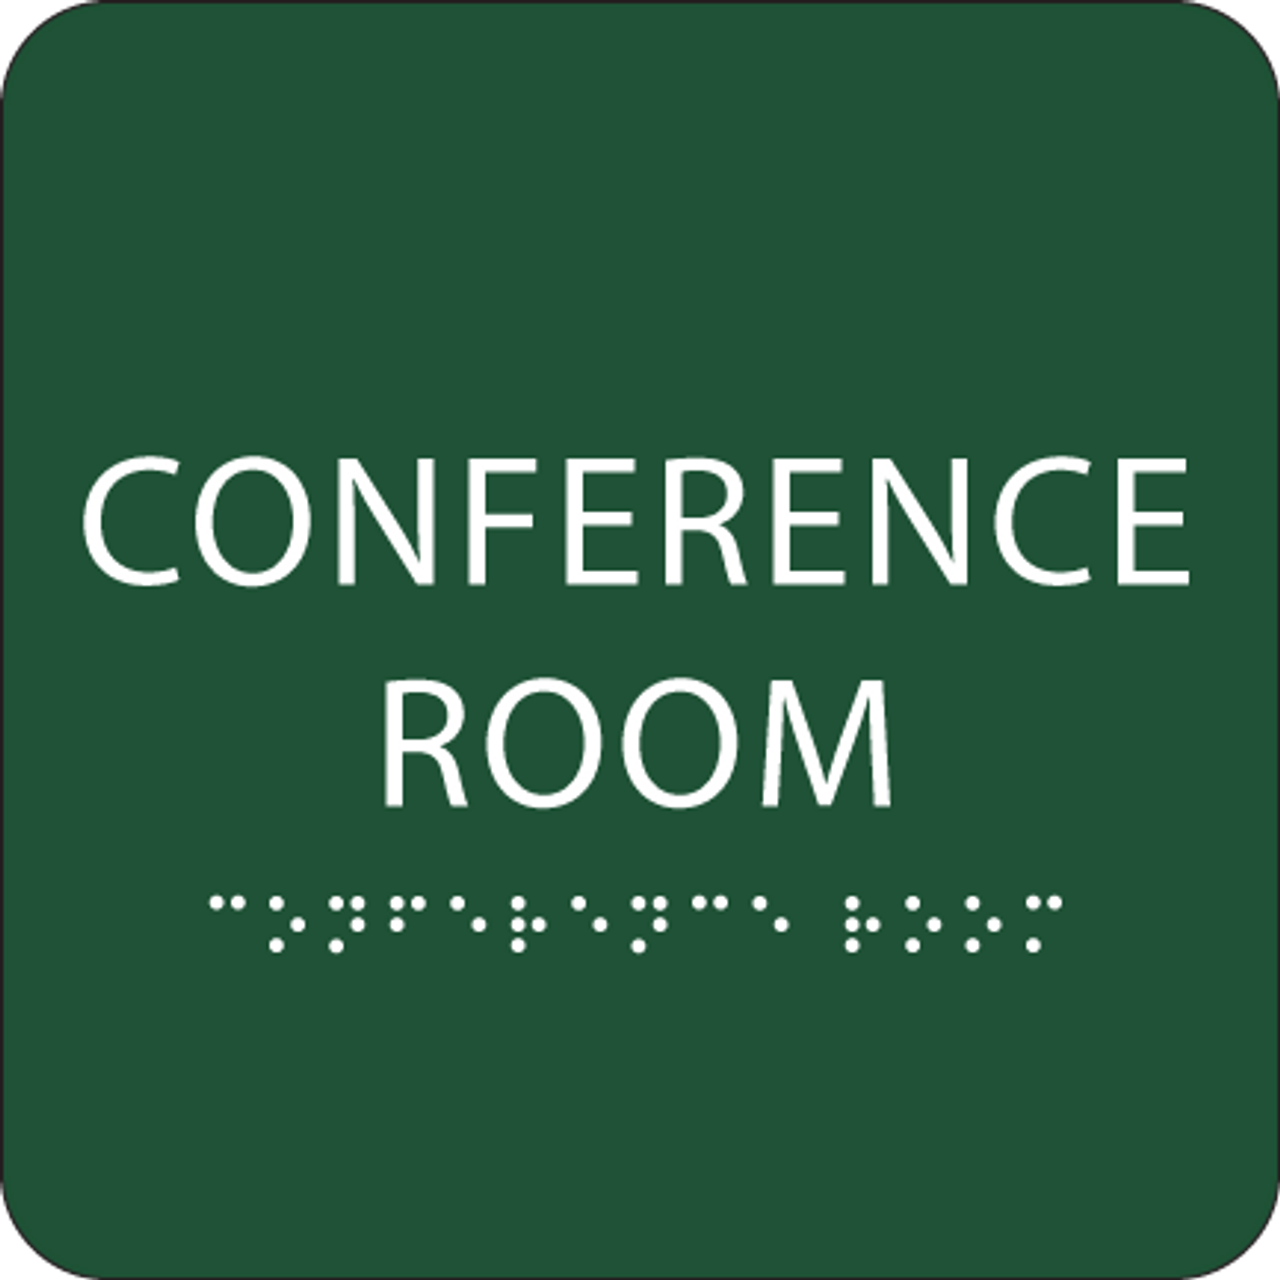 """Conference Room ADA Sign - 6"""" x 6"""""""